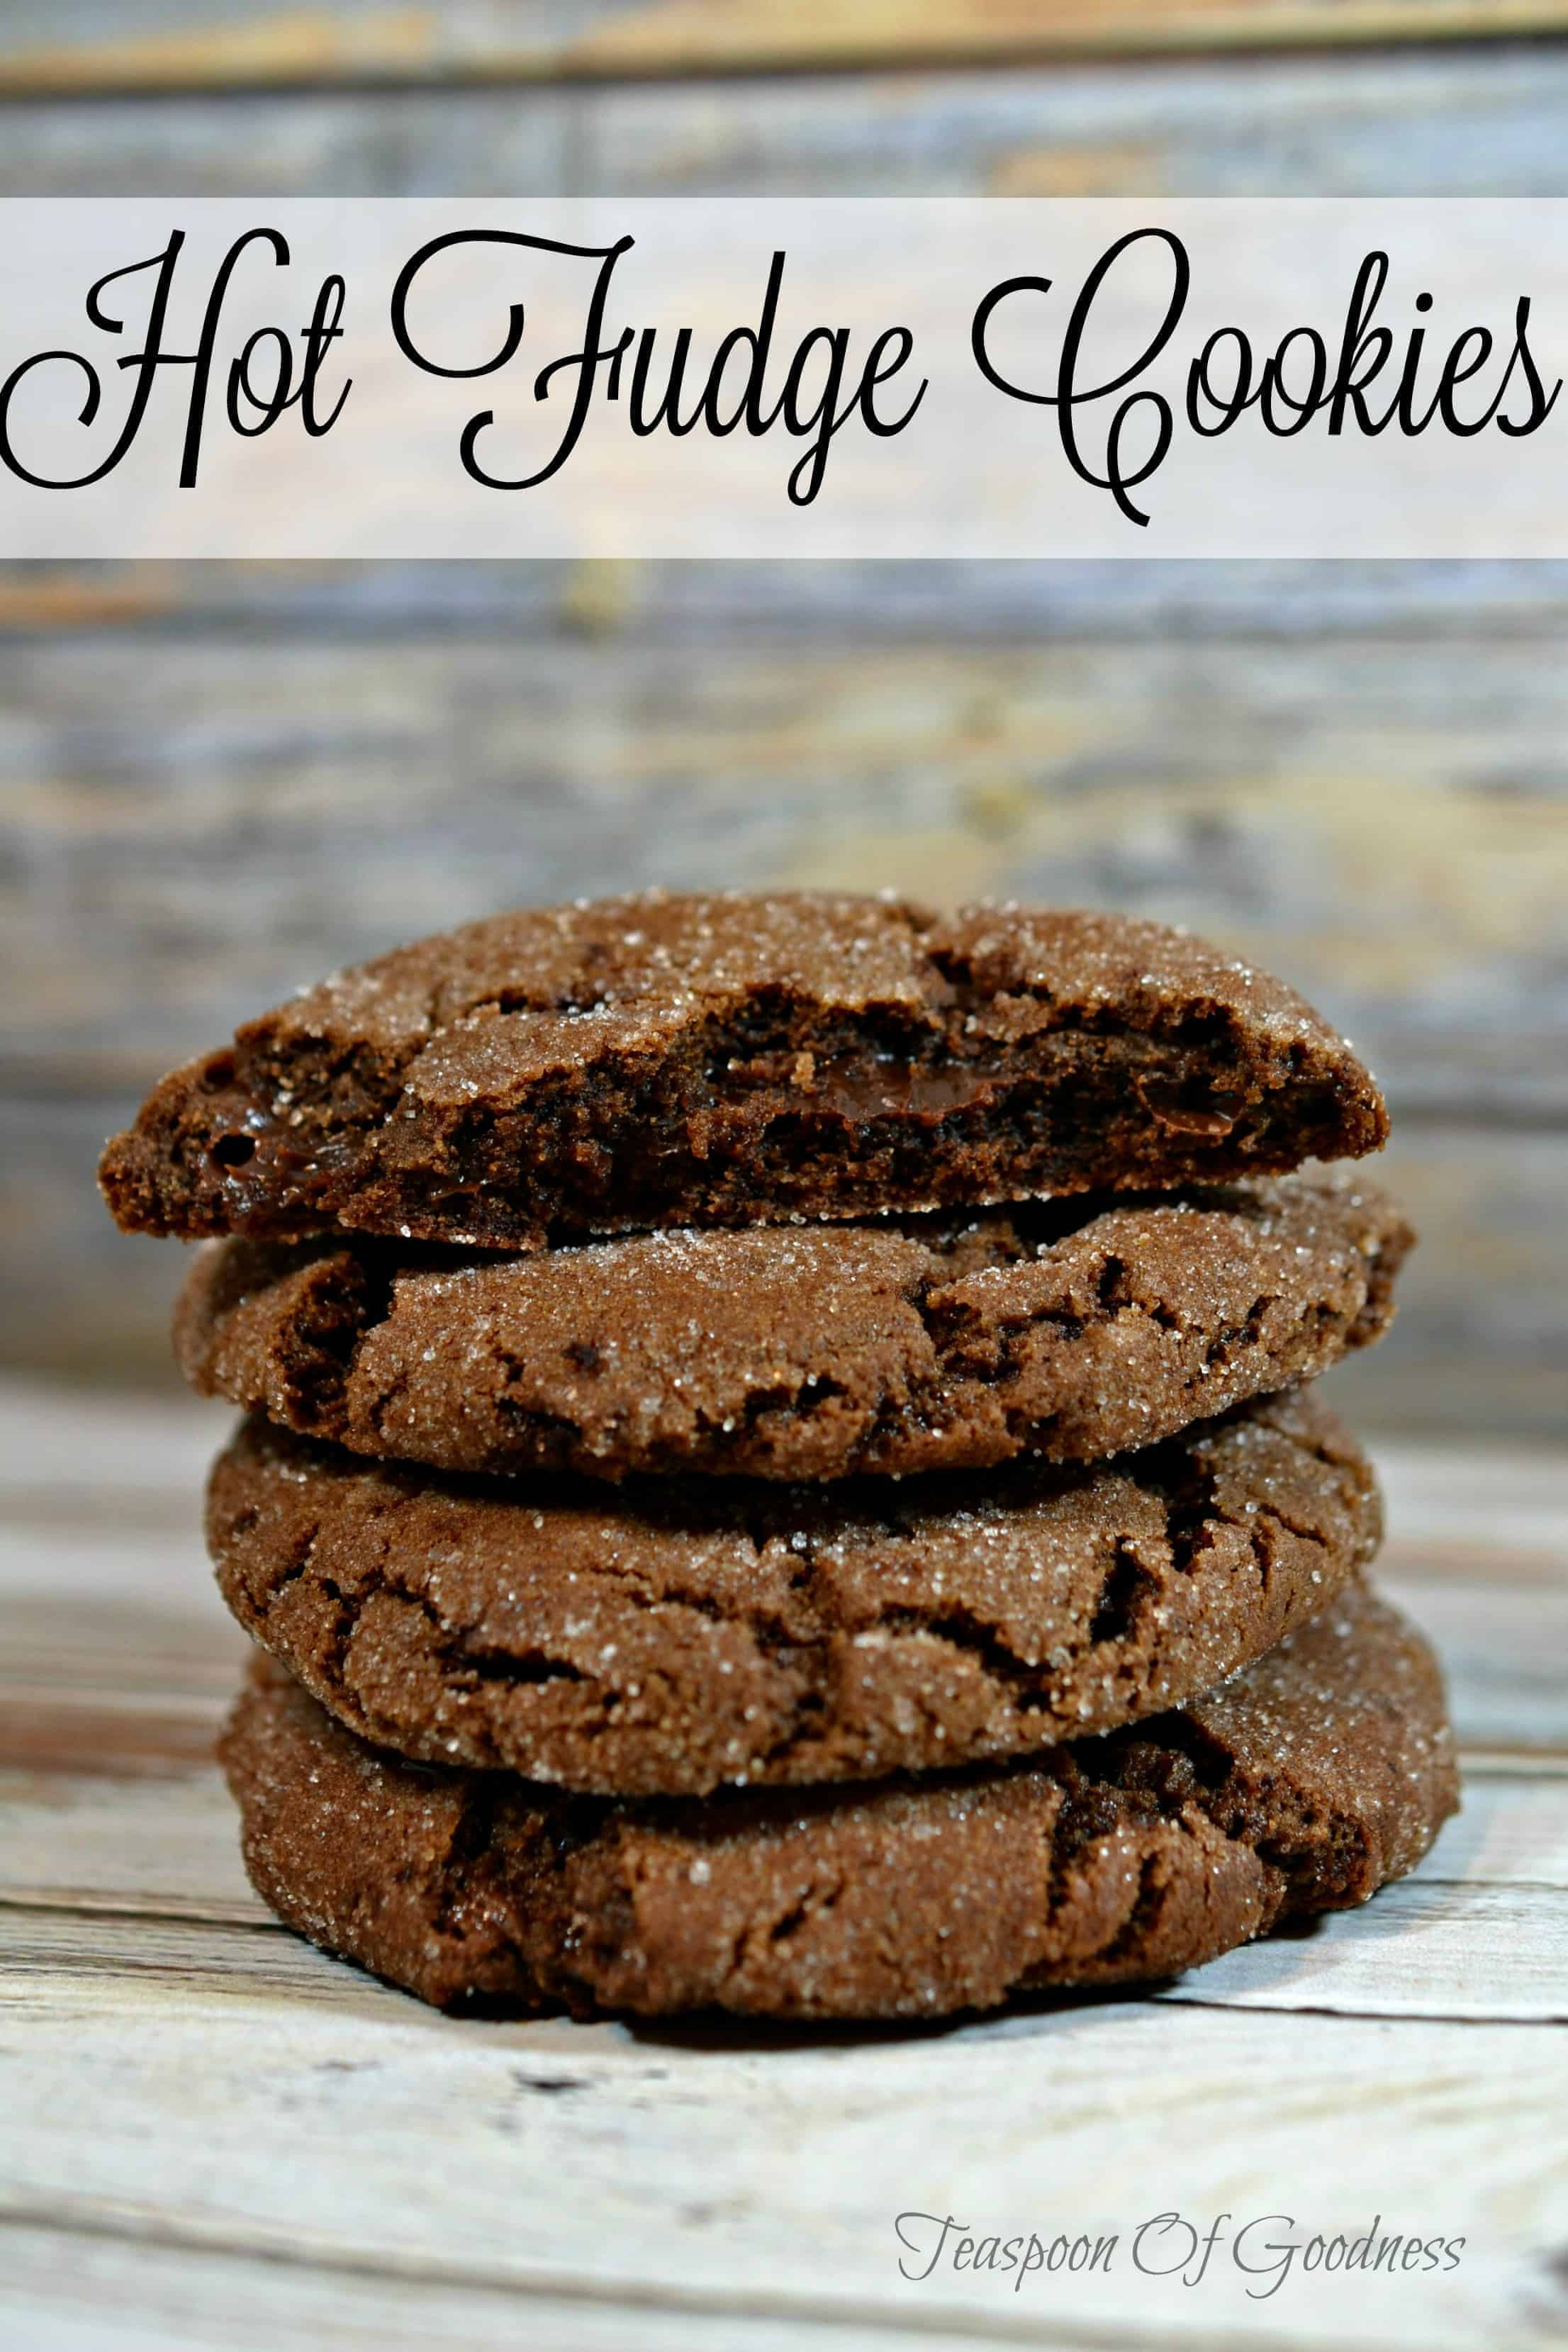 Hot Fudge Homemade Cookies